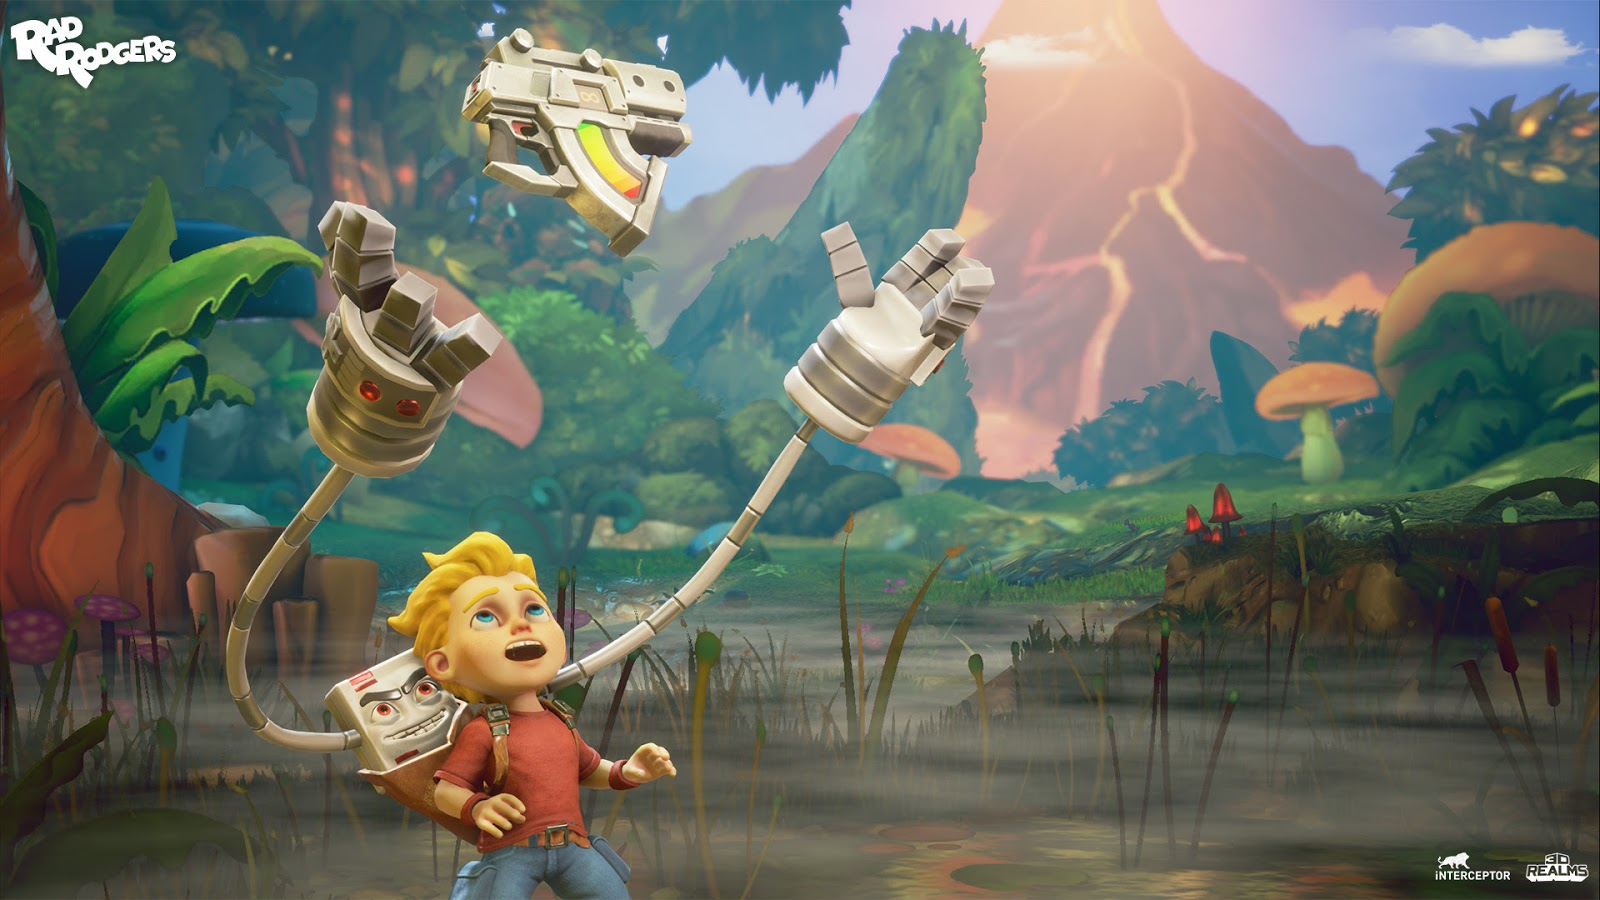 [Coming Soon] Rad Rodgers